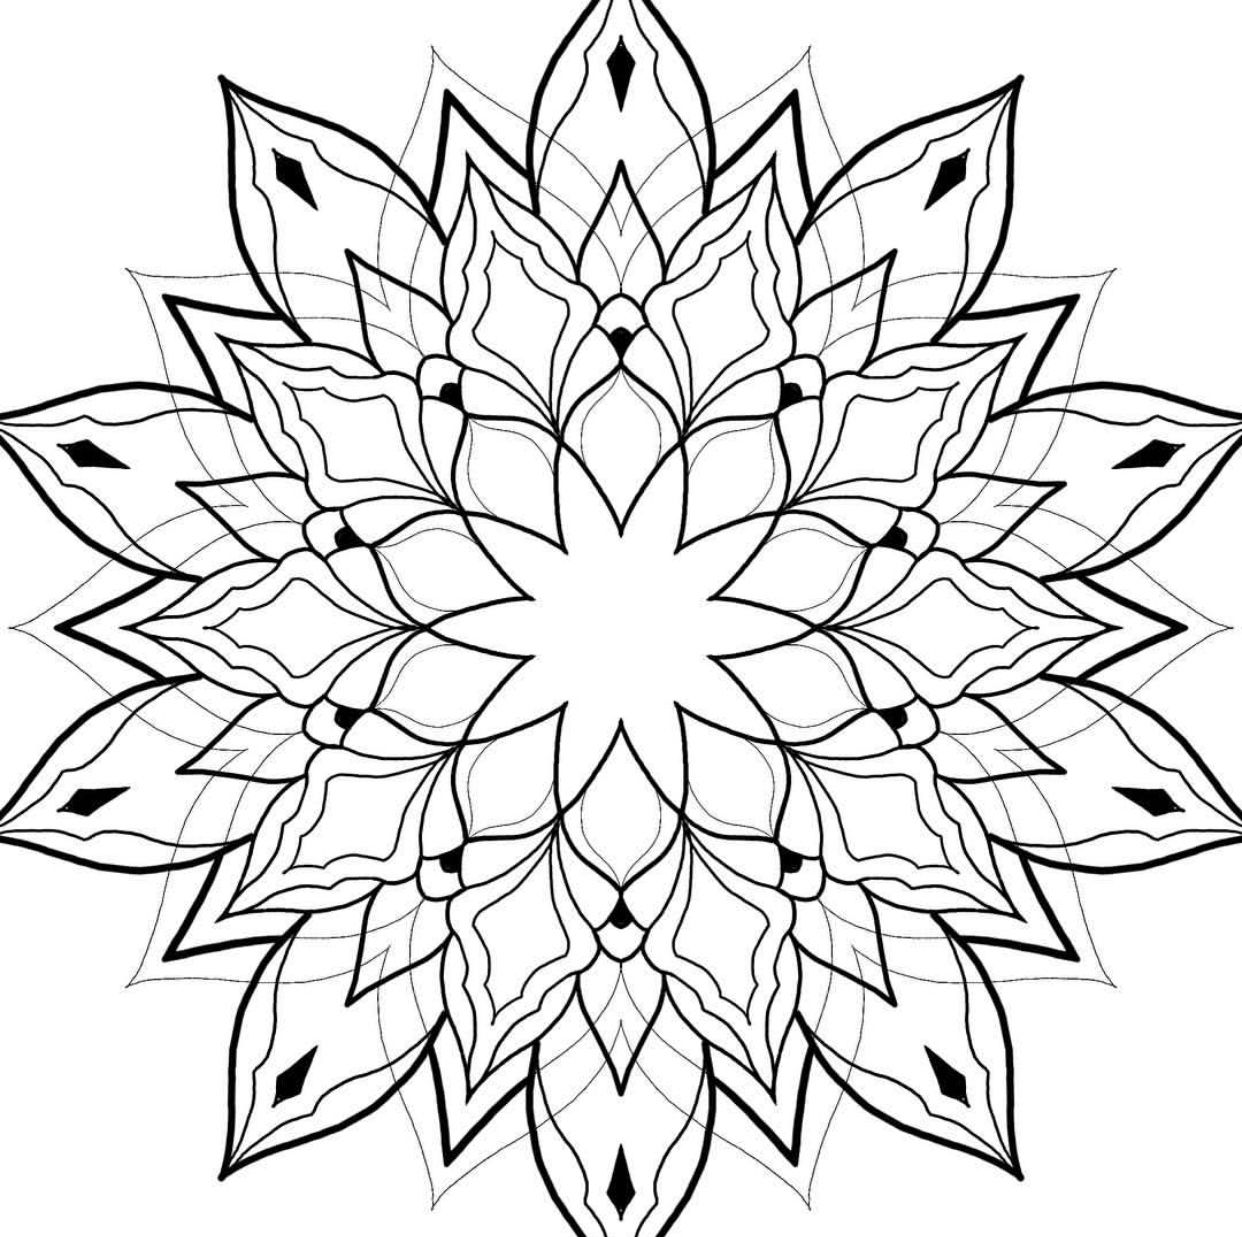 Pin By Seckin Saritas On Mandala In 2020 Mandala Coloring Pages Mandala Coloring Mandala